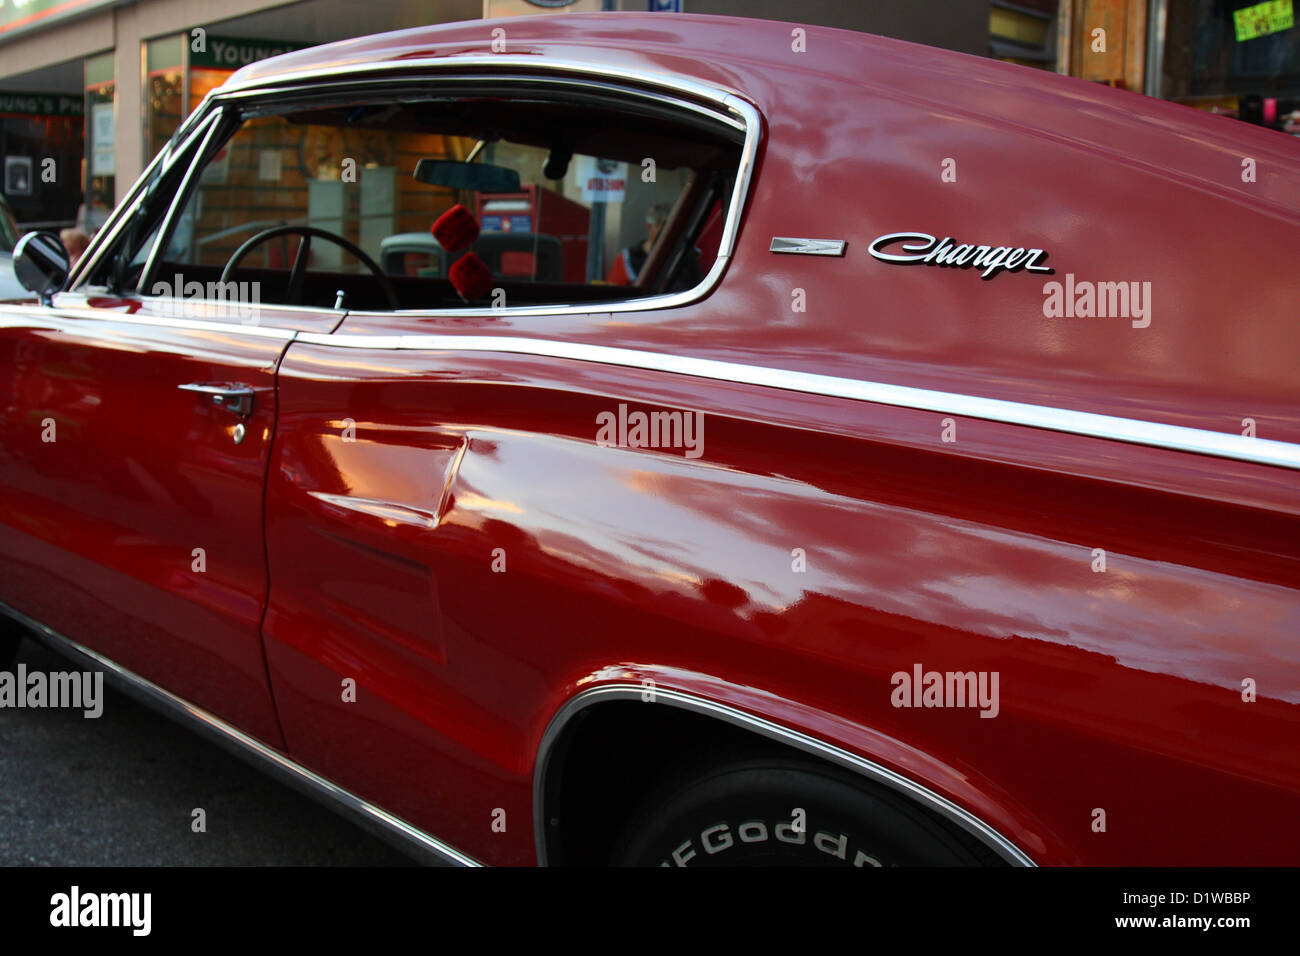 red classic charger automobile - Stock Image